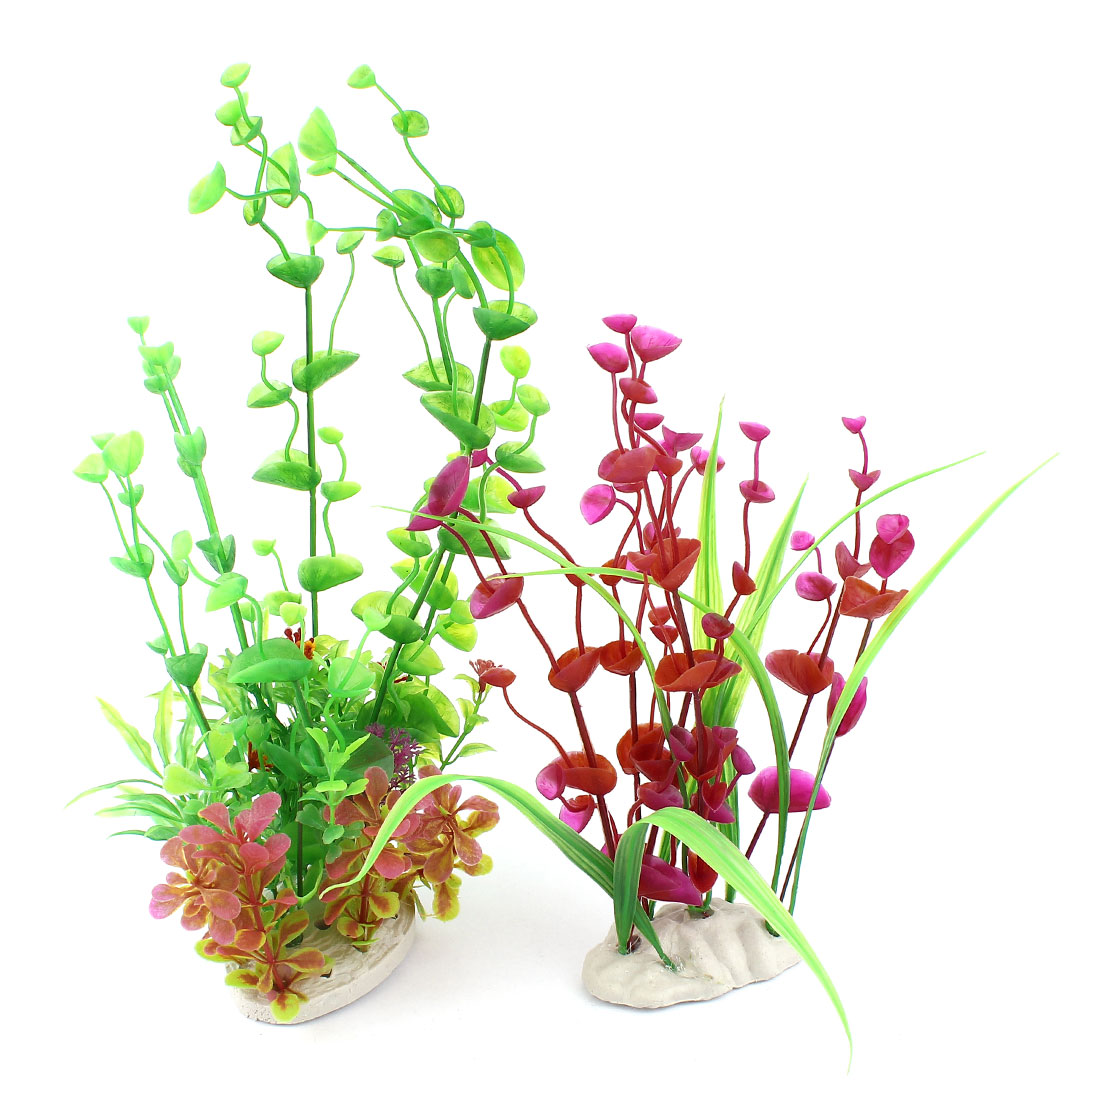 2 In 1 Green Grass Fuchsia Flower Plastic Aquatic Plant for Aquarium Tank